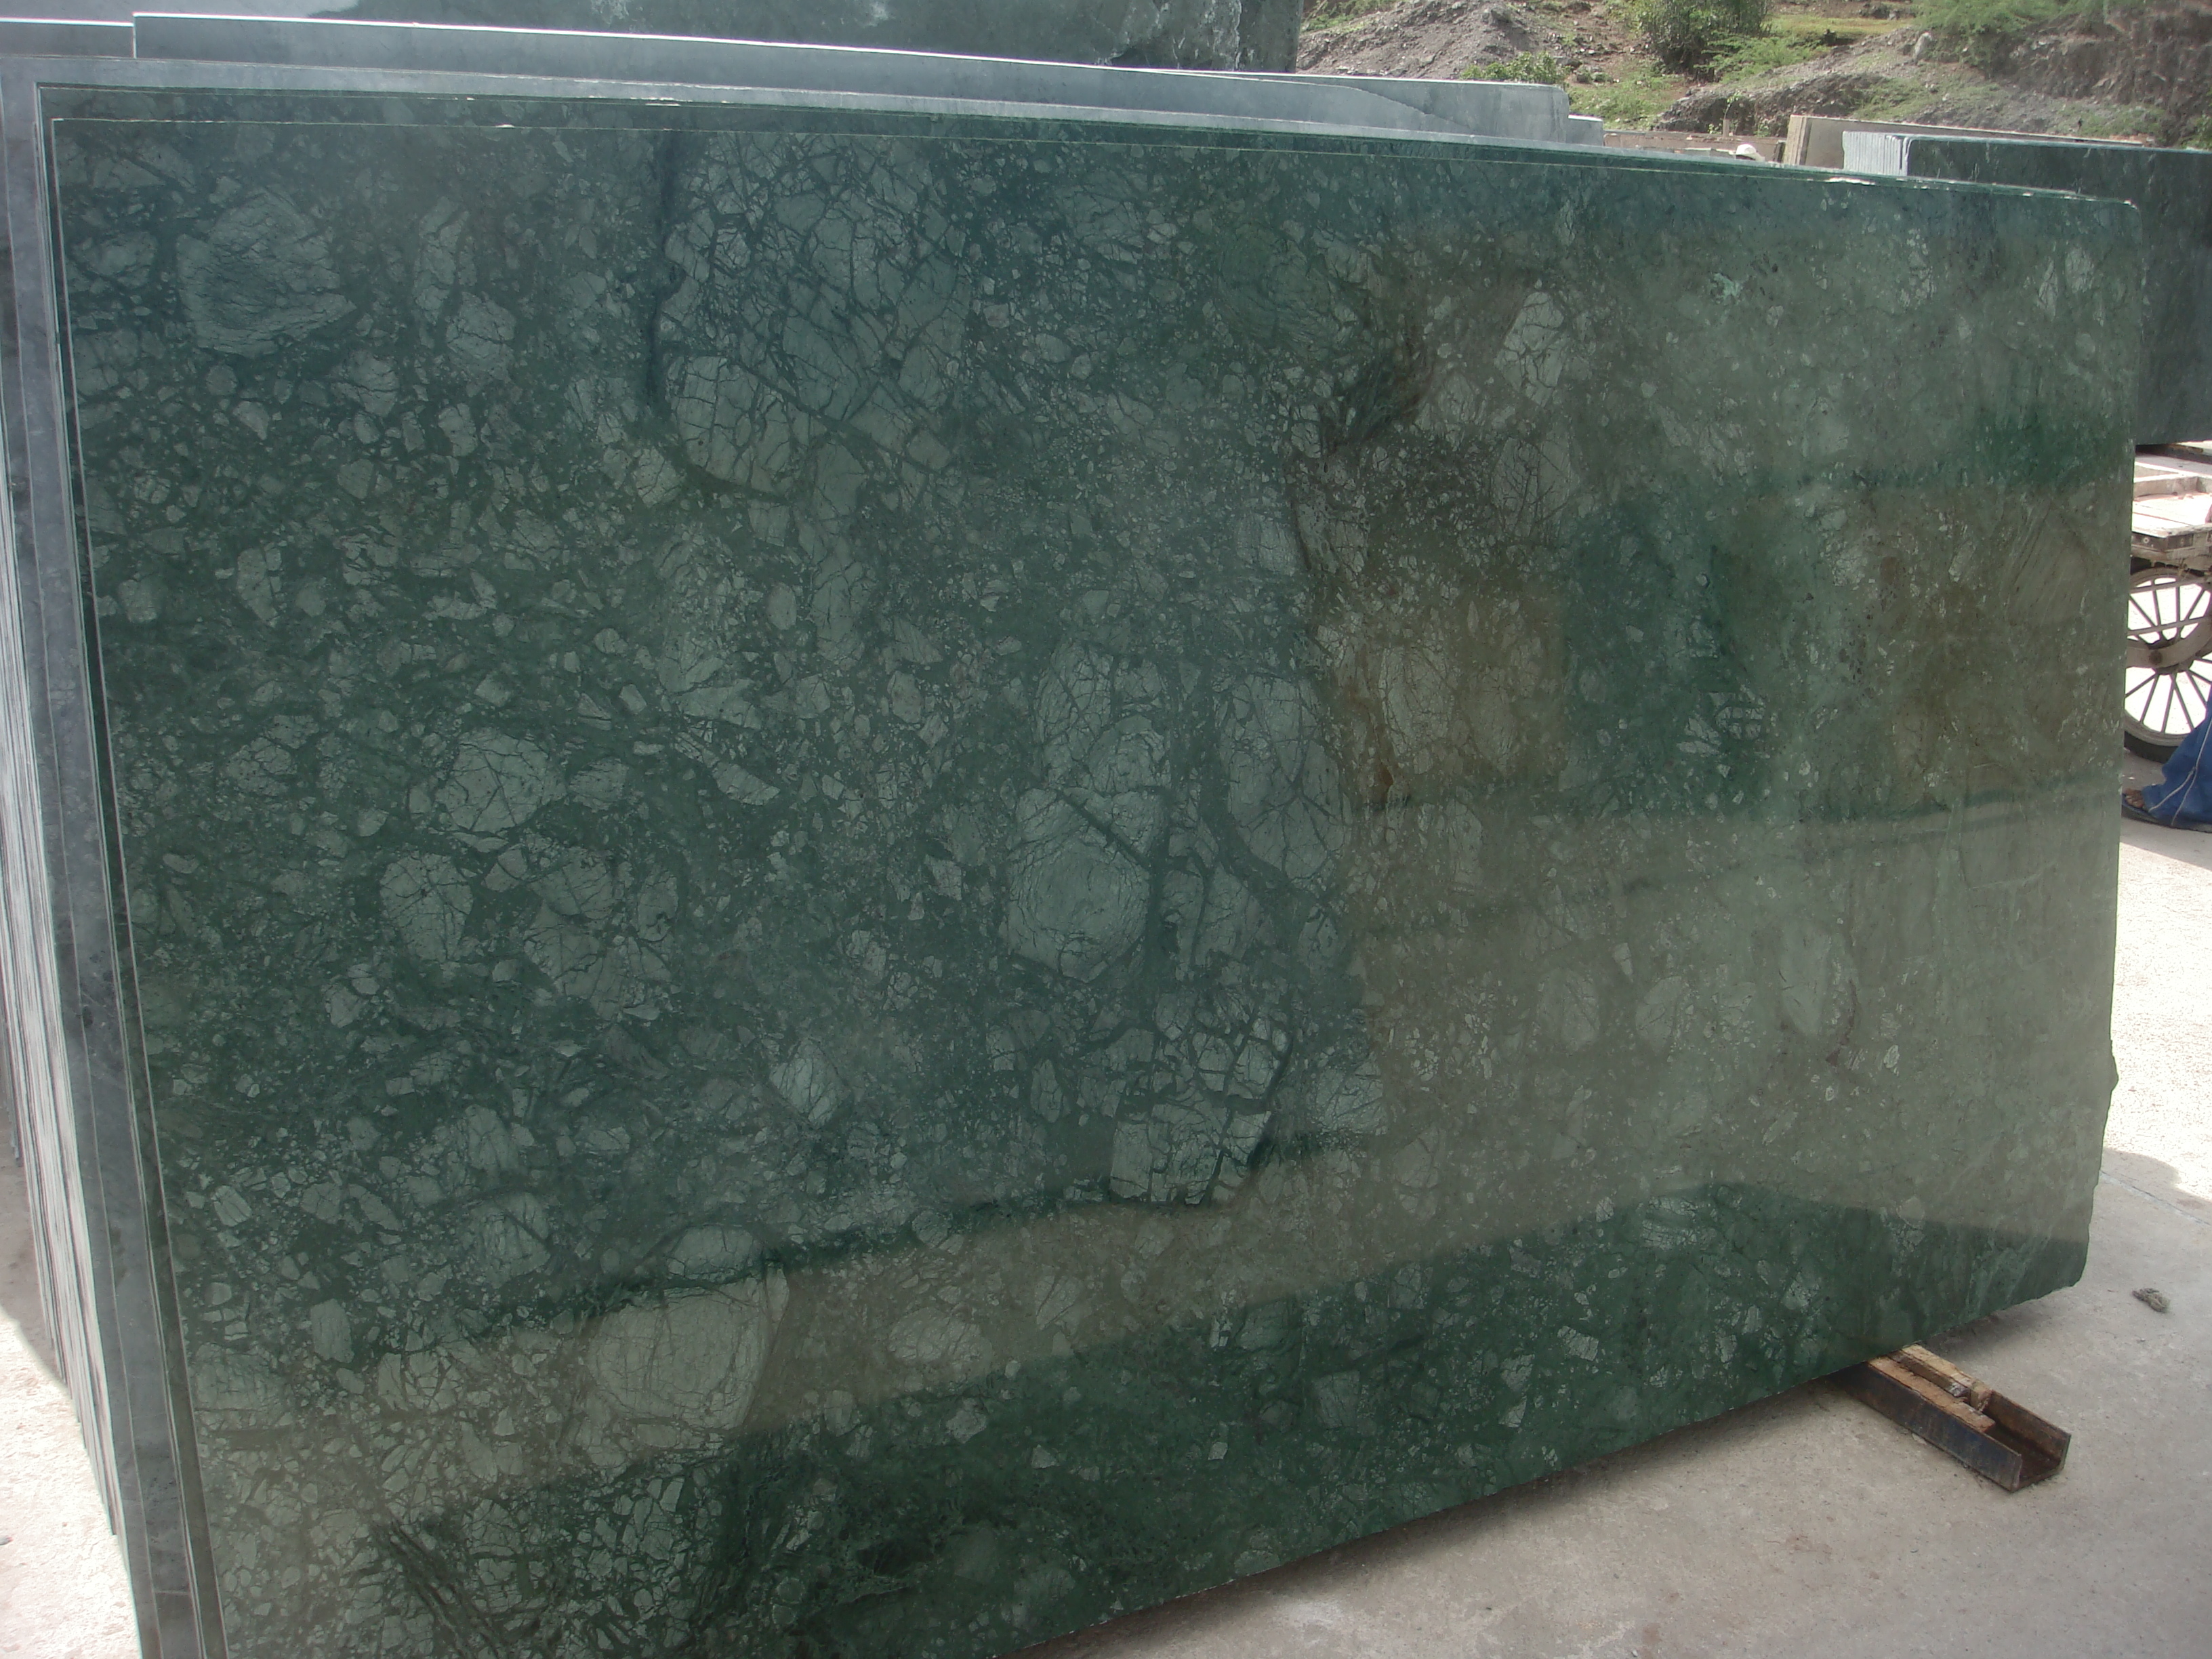 Green Marble Green Marble Udaipur Green Marble Tiles Slabs Green Marble India Stone Ideas Stone Floor Stone Tiles Stone Cladding Stone Ideas Net